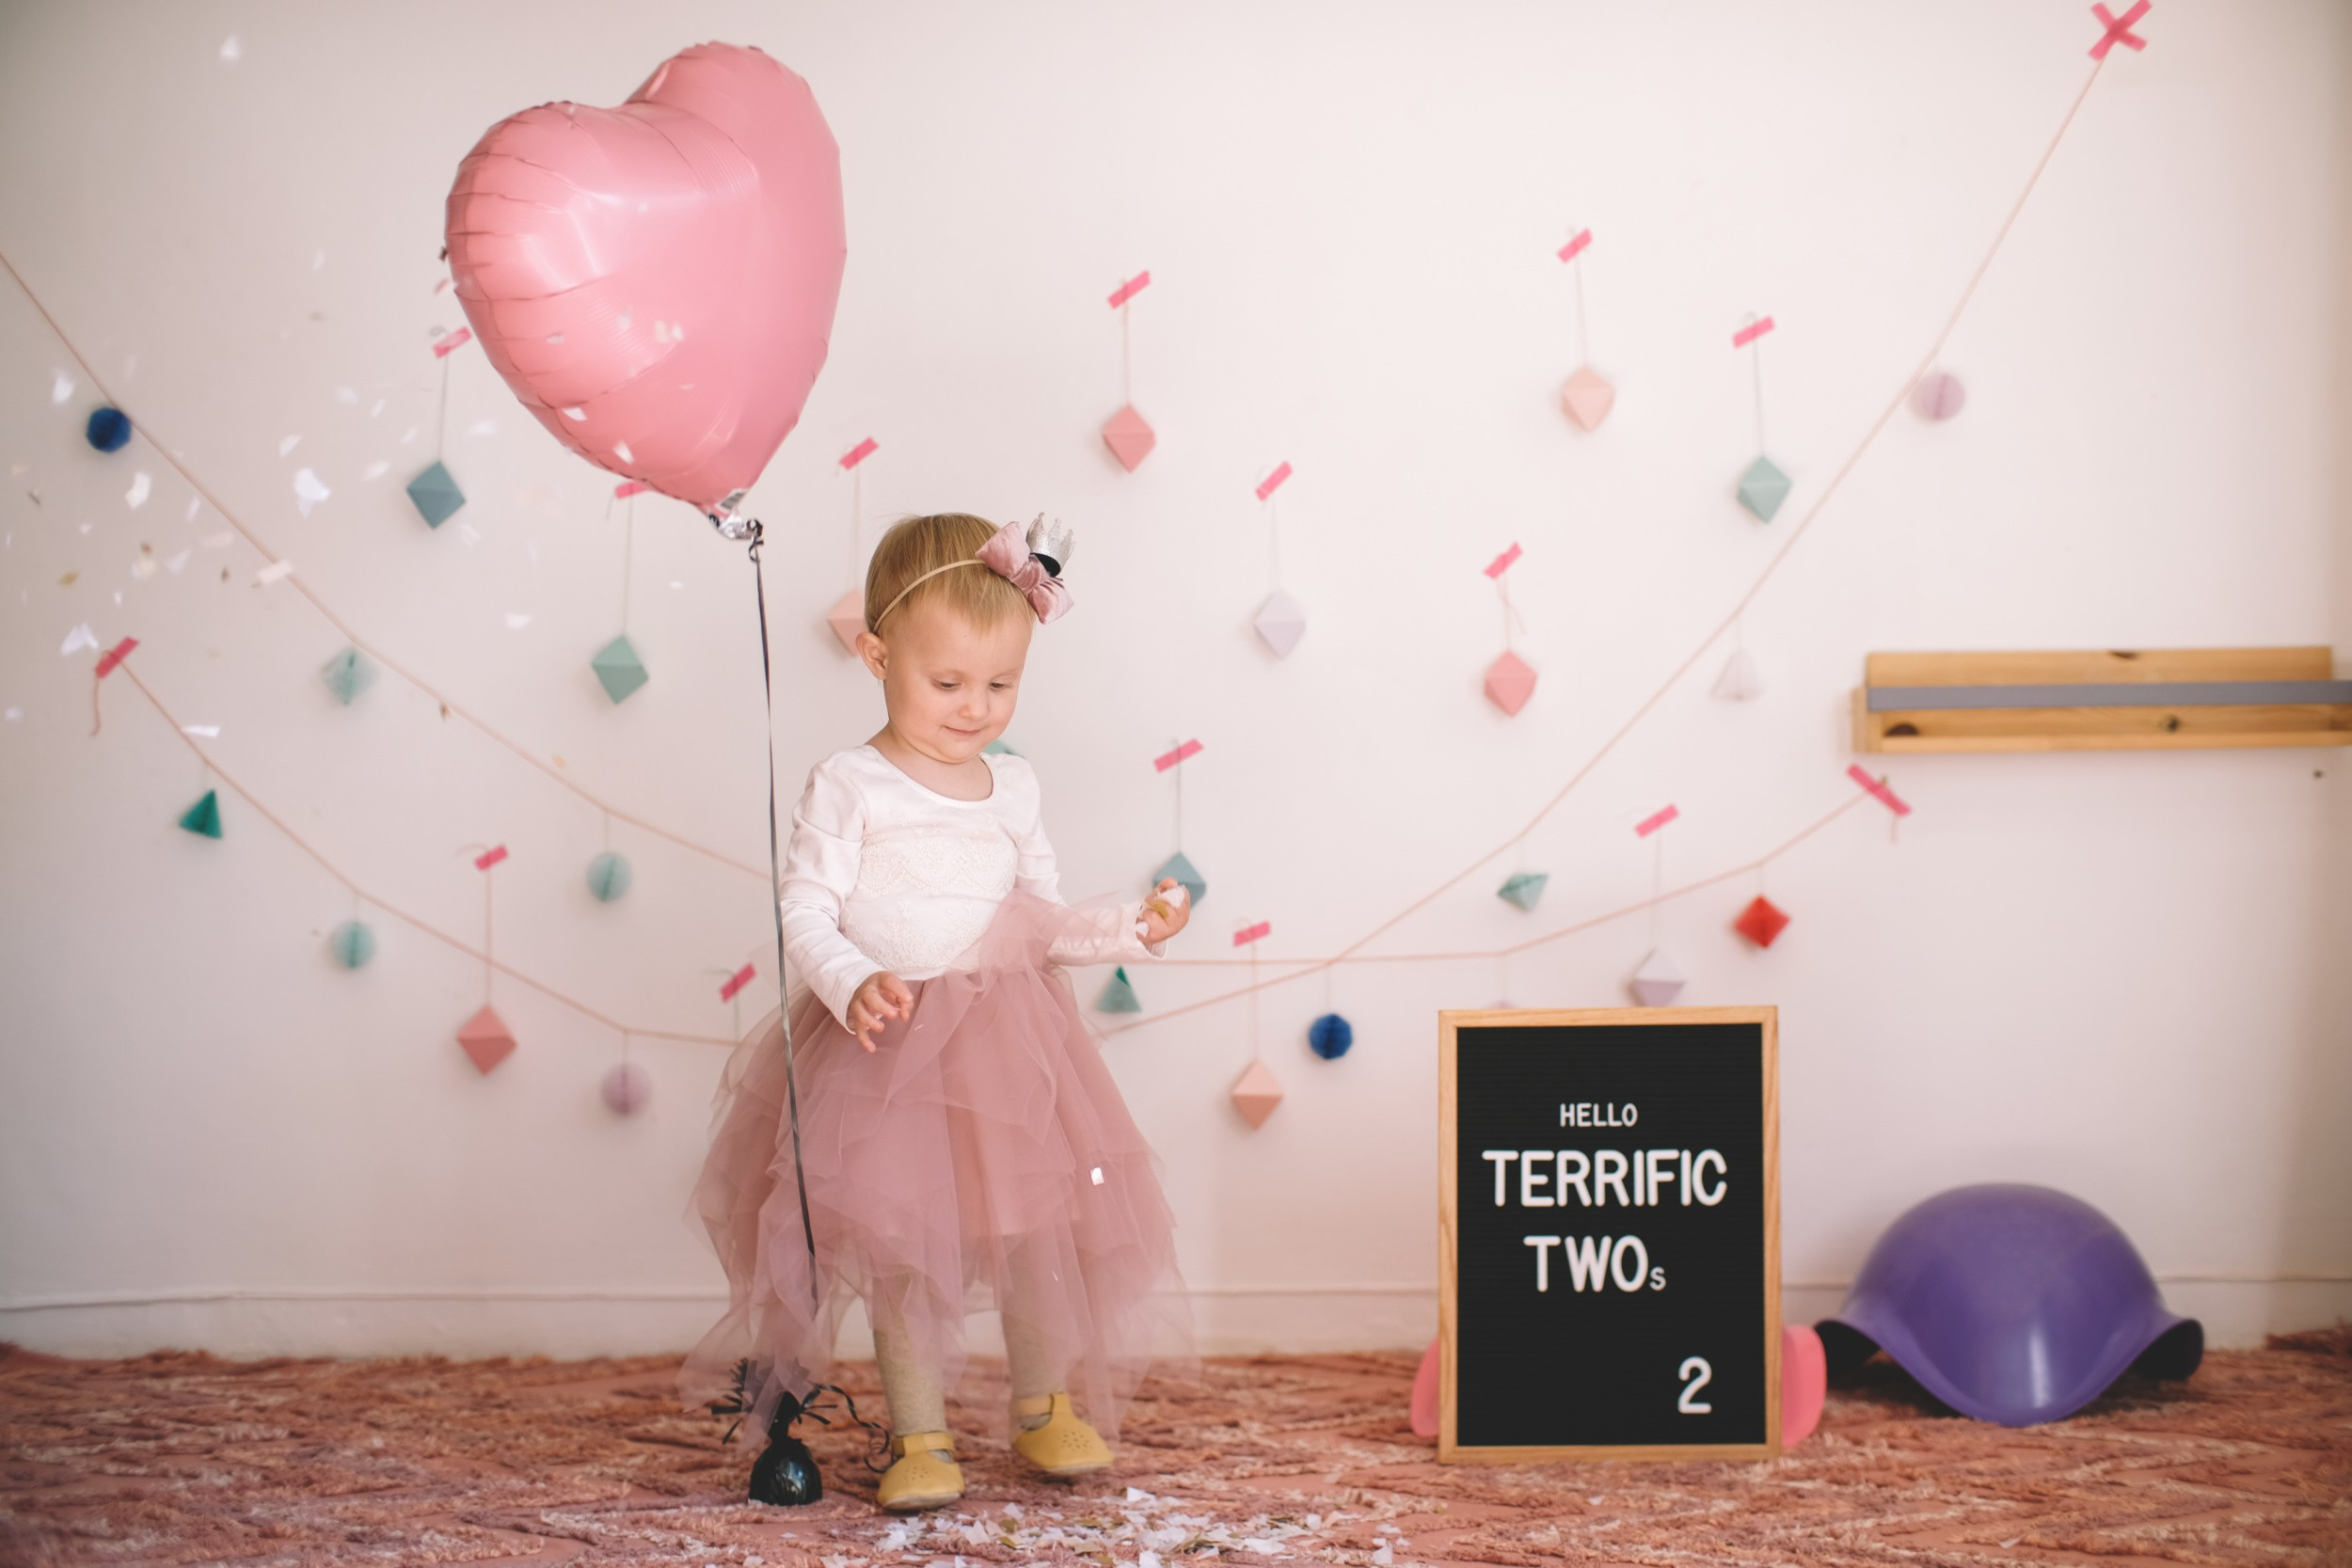 2nd-birthday-party-ideas